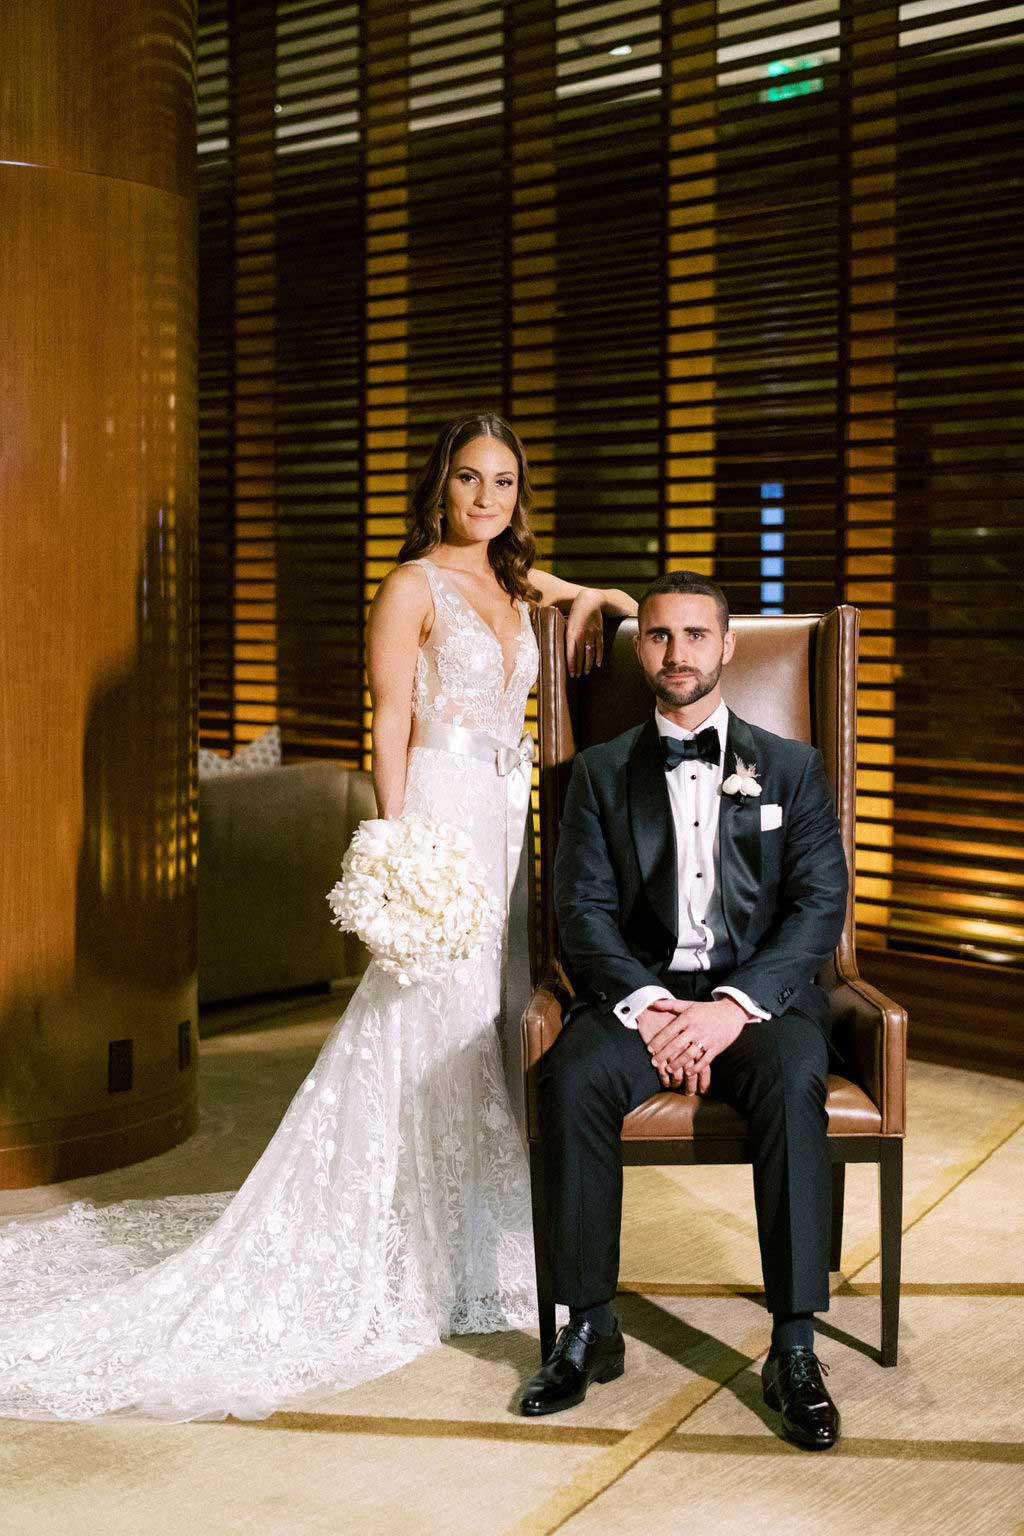 groom sits on chair and bride places arm on chair holding her bouquet.